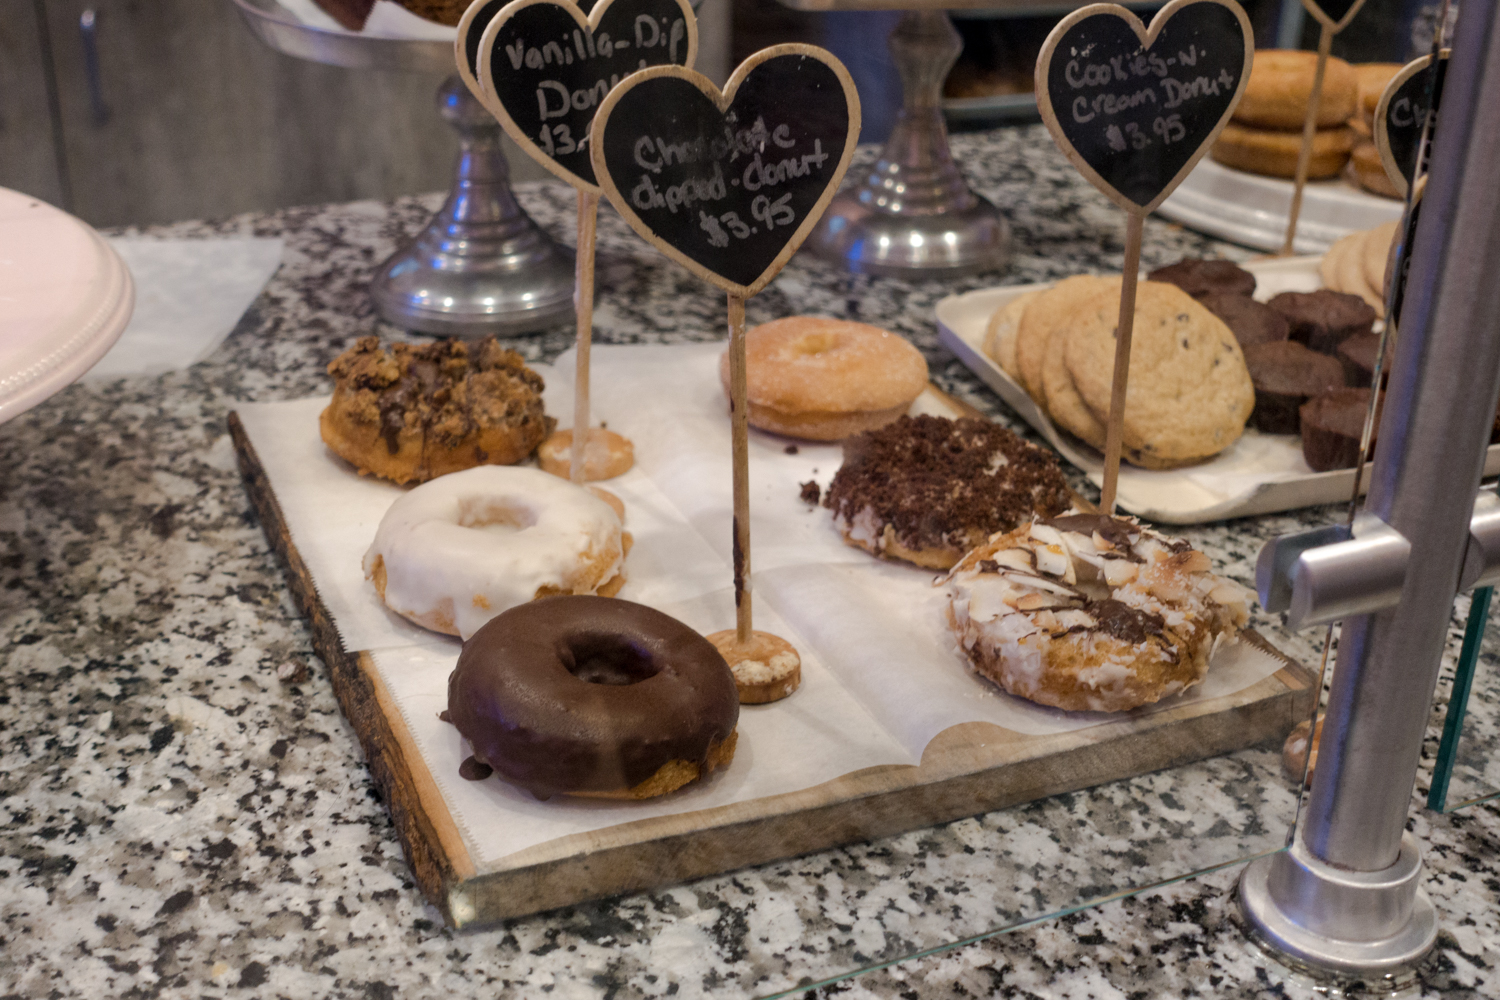 vegan donuts from Erin Mckenna's Bakery at Disney Springs #vegan #disneyworld